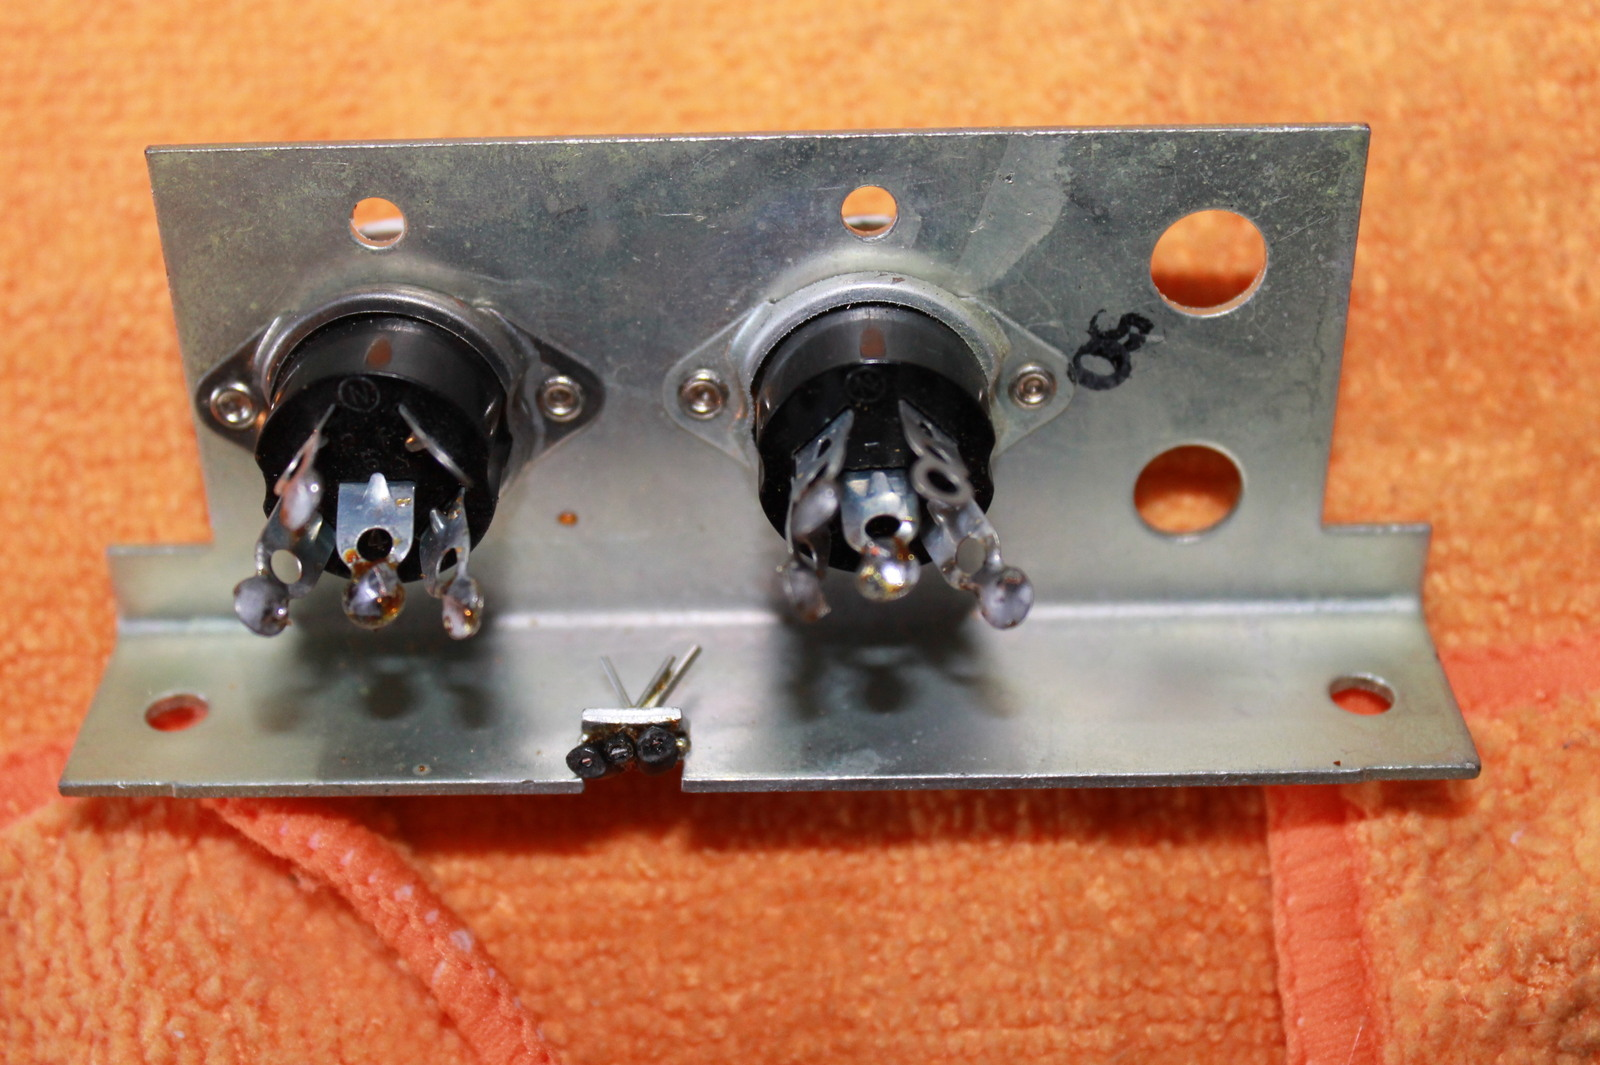 Zenith audio connector plate with two pin connectors